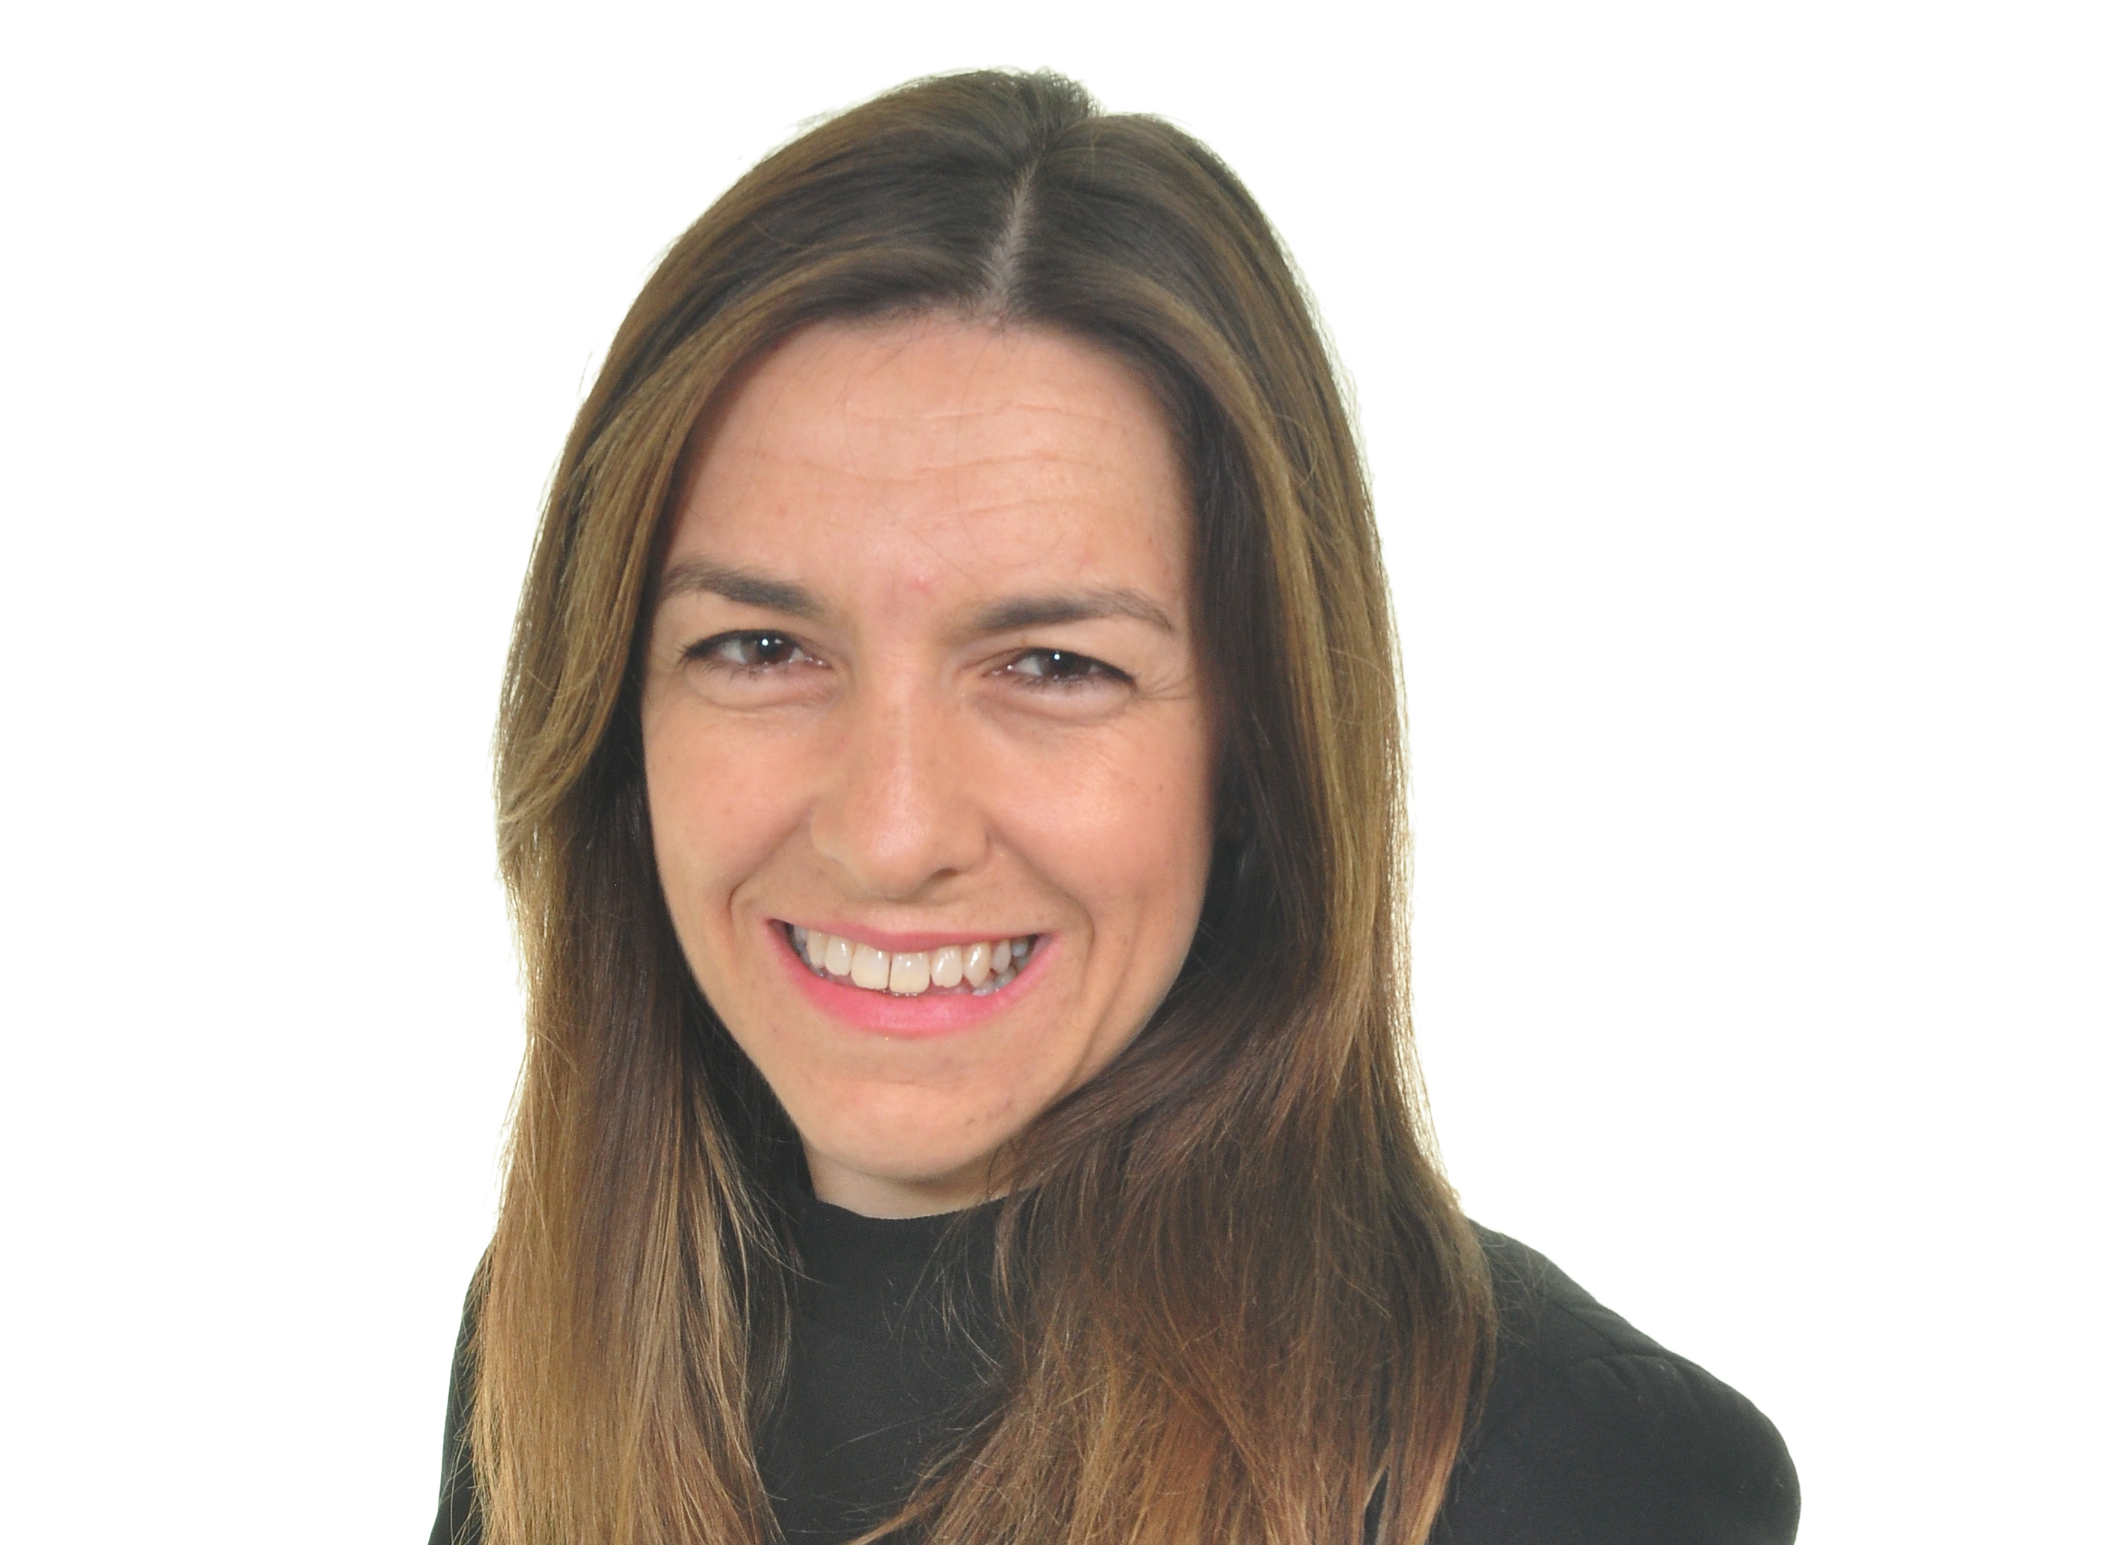 Beyond International appoints Kate Llewellyn-Jones as CEO of its London-based distribution business